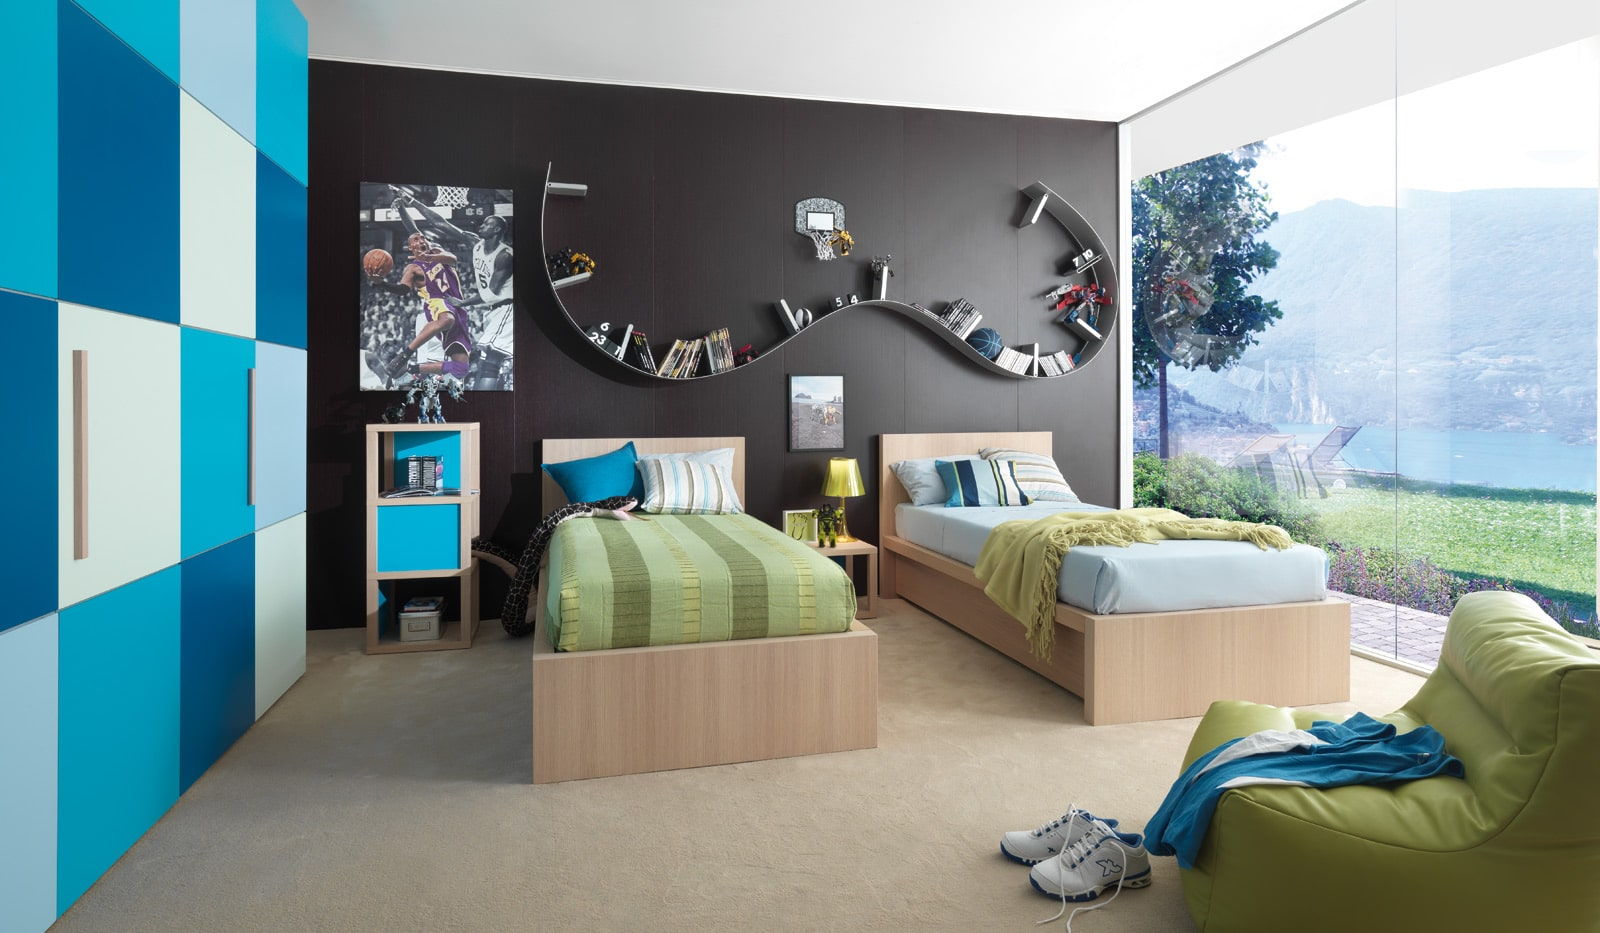 hochwertige kinderm bel und jugendm bel mit modernem design. Black Bedroom Furniture Sets. Home Design Ideas